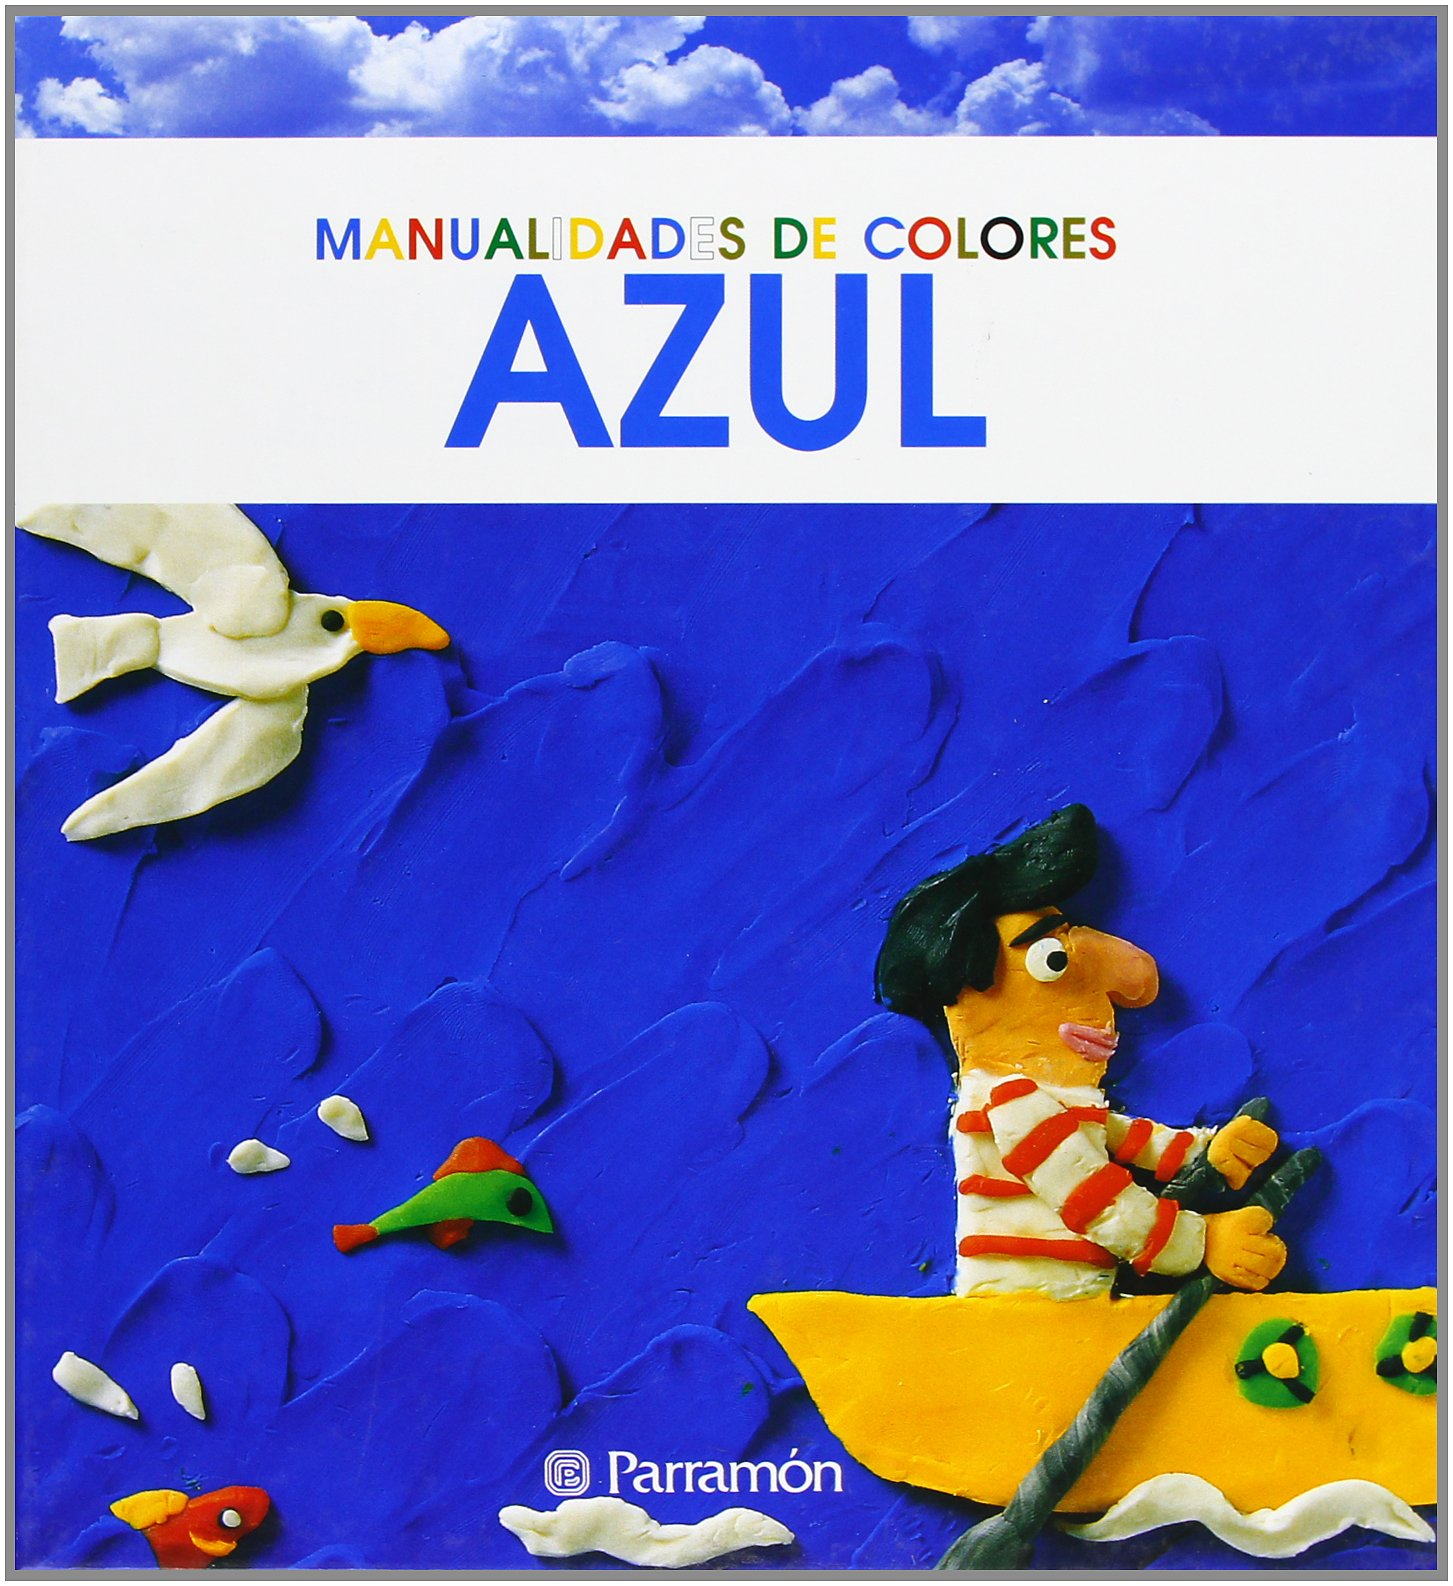 Download Manualidades De Colores Azul/ Handcrafts of Blue Colors (Spanish Edition) ebook